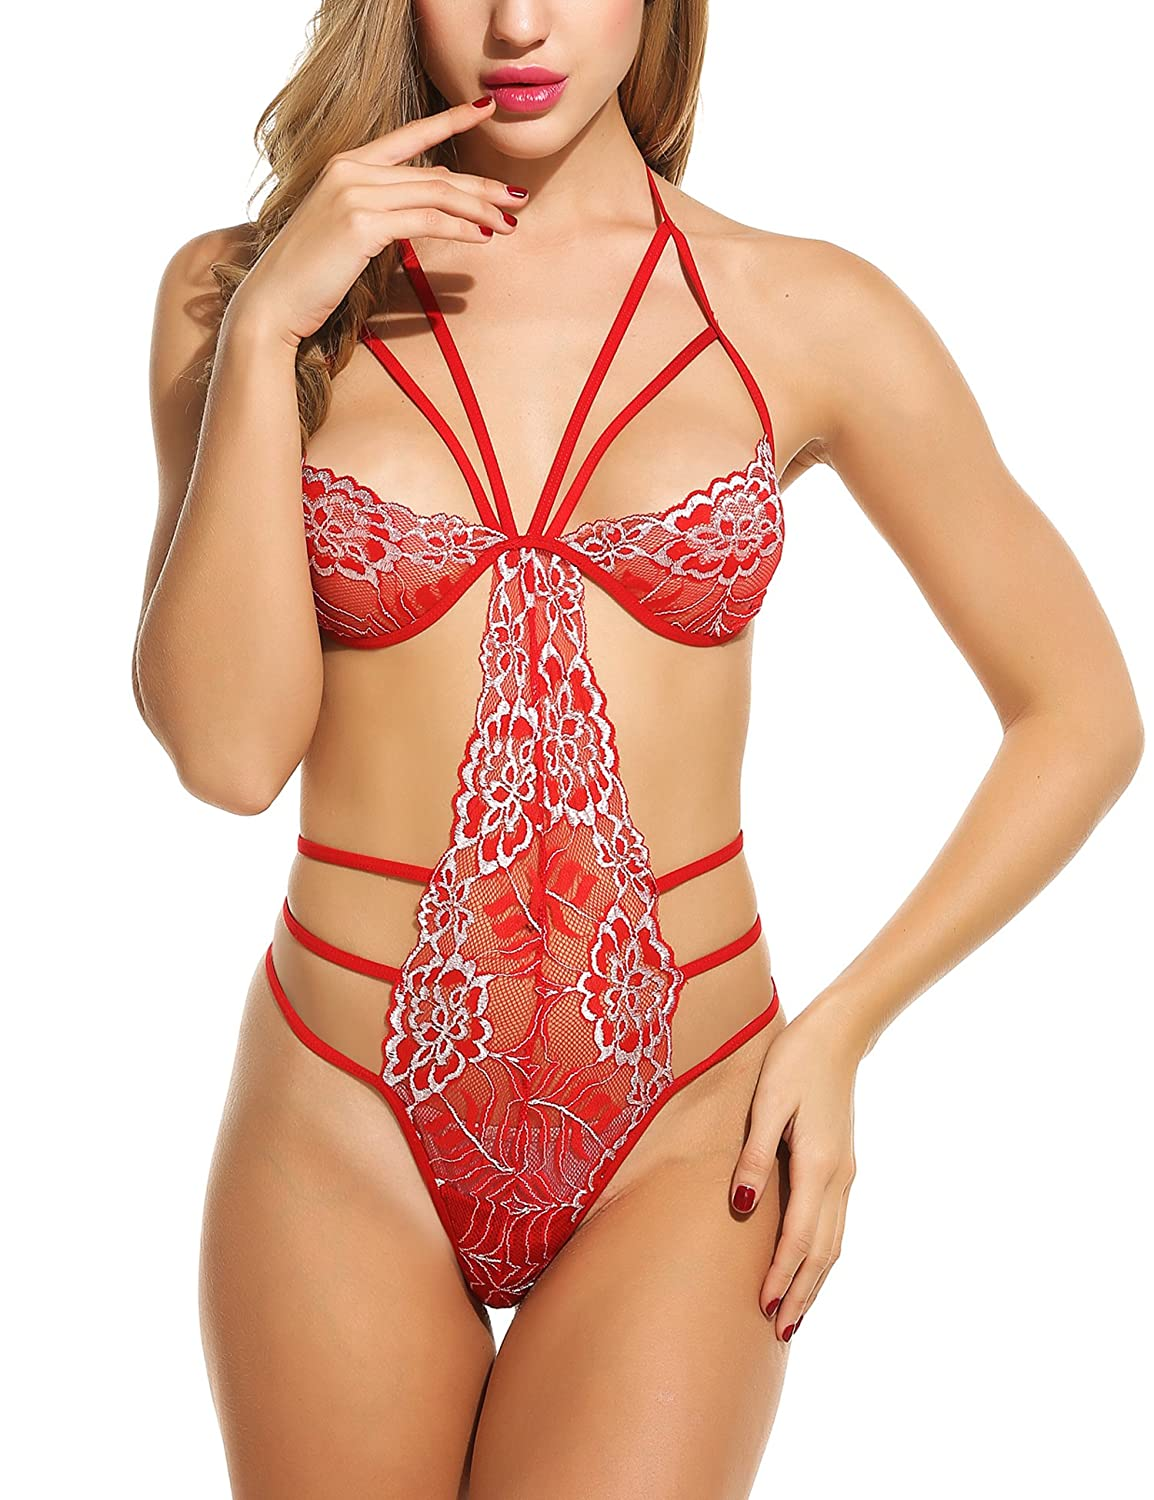 bf24d05ab5 Avidlove Sexy Teddy Lingerie for Women One Piece Halter Lace Babydoll  Bodysuit at Amazon Women s Clothing store